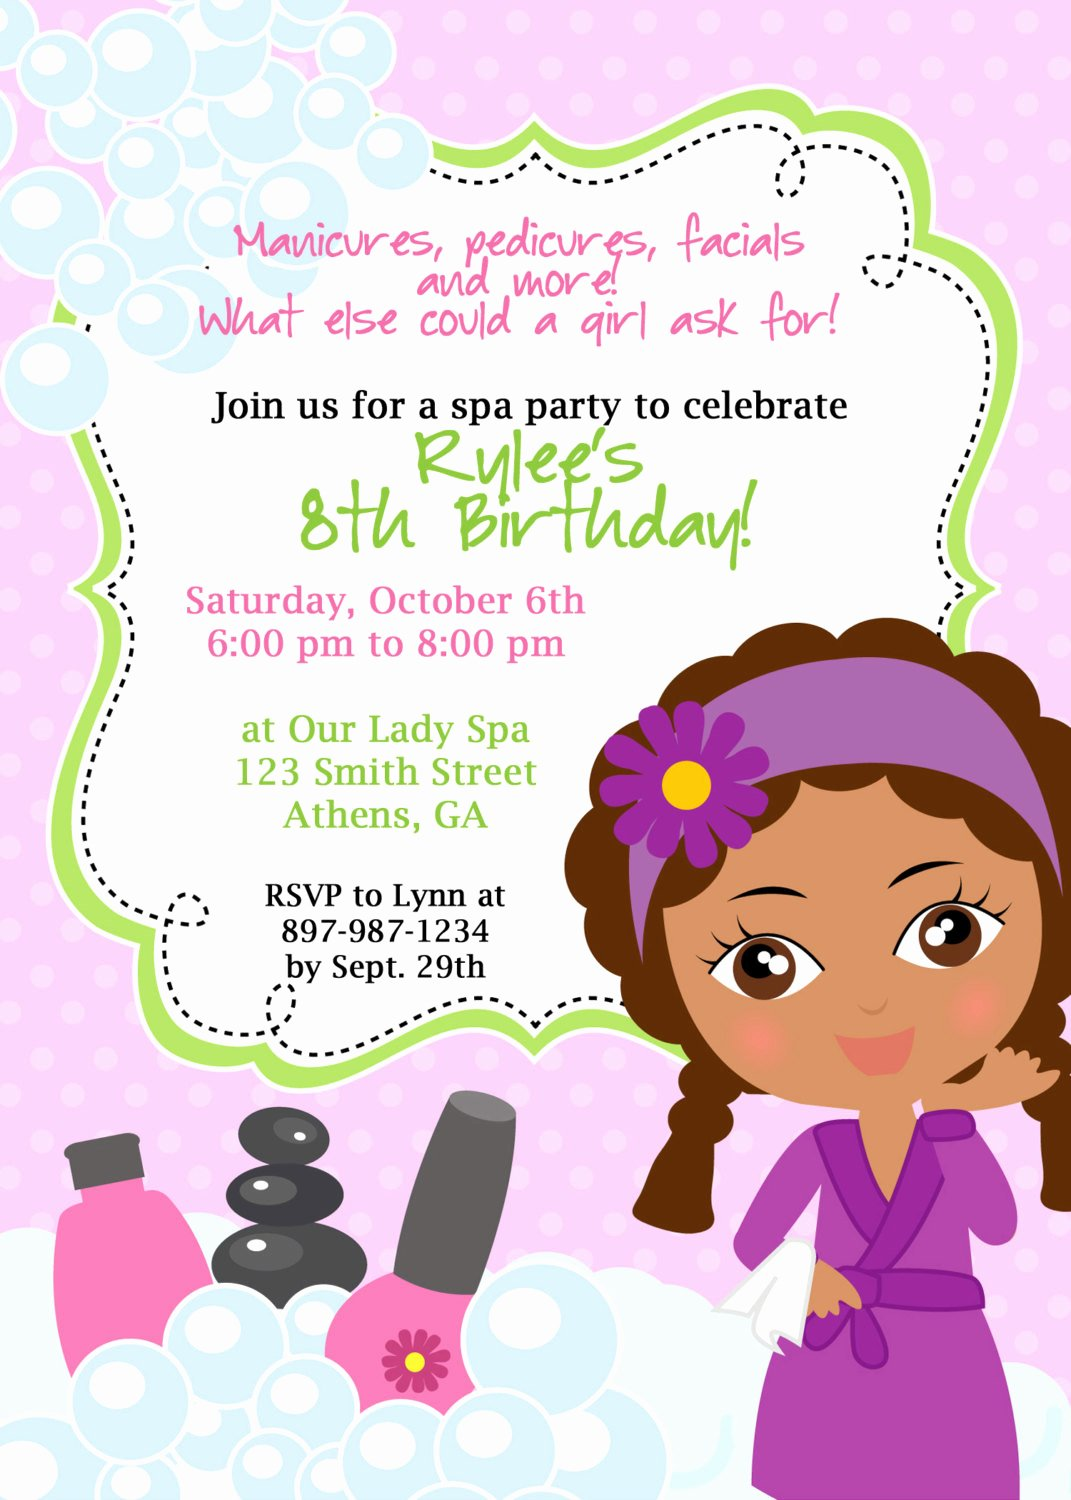 Spa Party Invitation Wording Elegant Diy Sassy Spa Party Invitation African American by Cohenlane